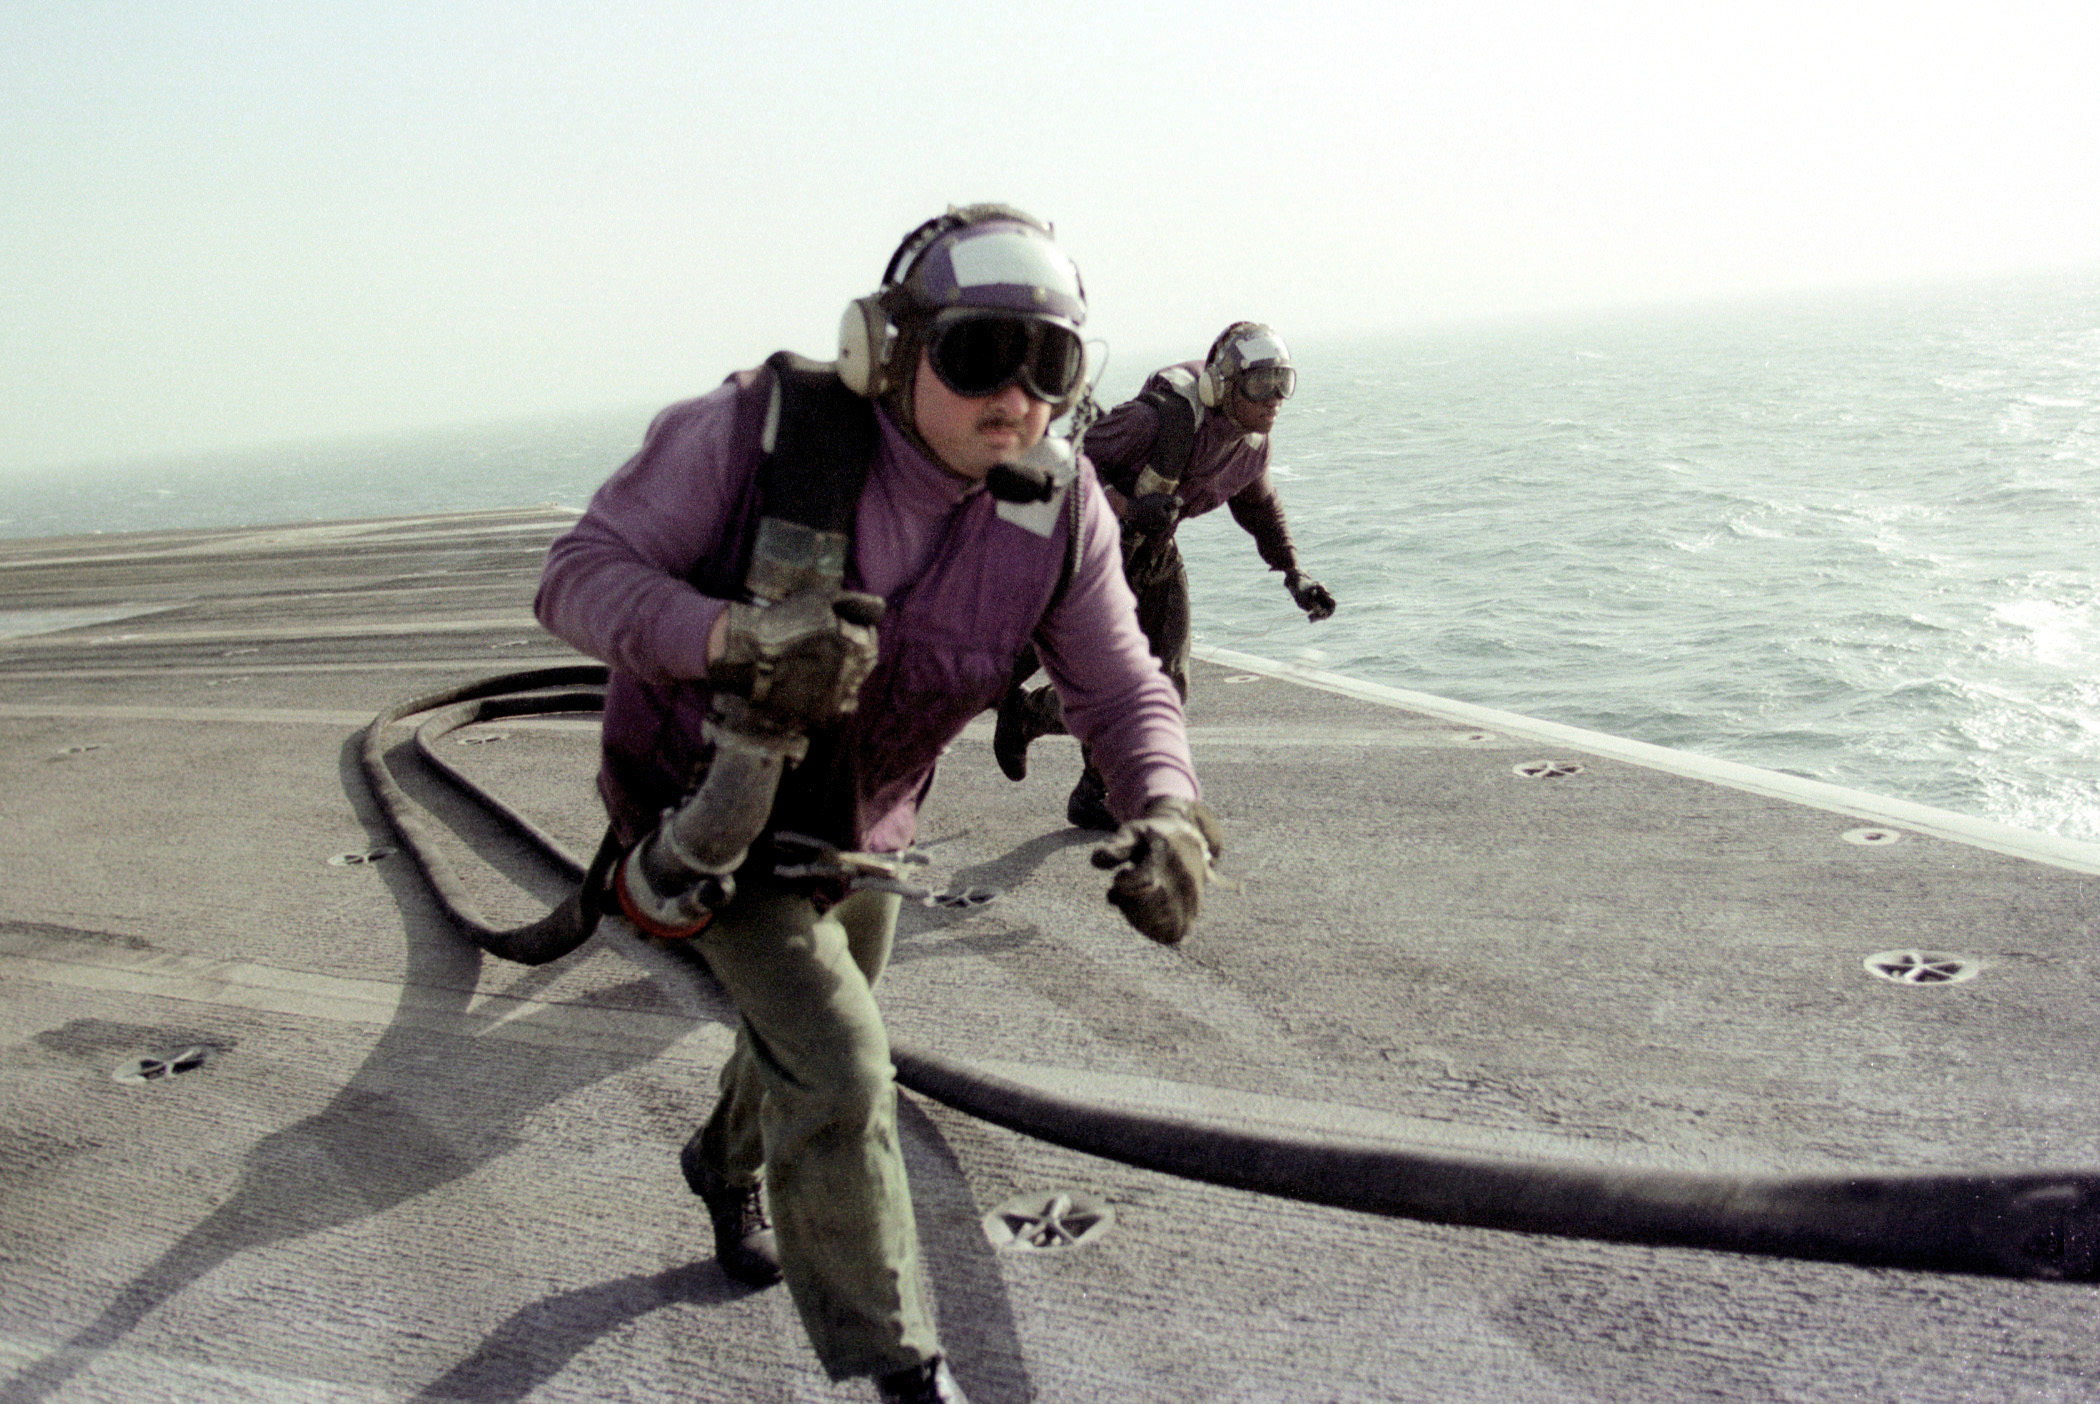 Navy 000204-N-9383R-001 Aircraft refueling operations aboard ship.jpg